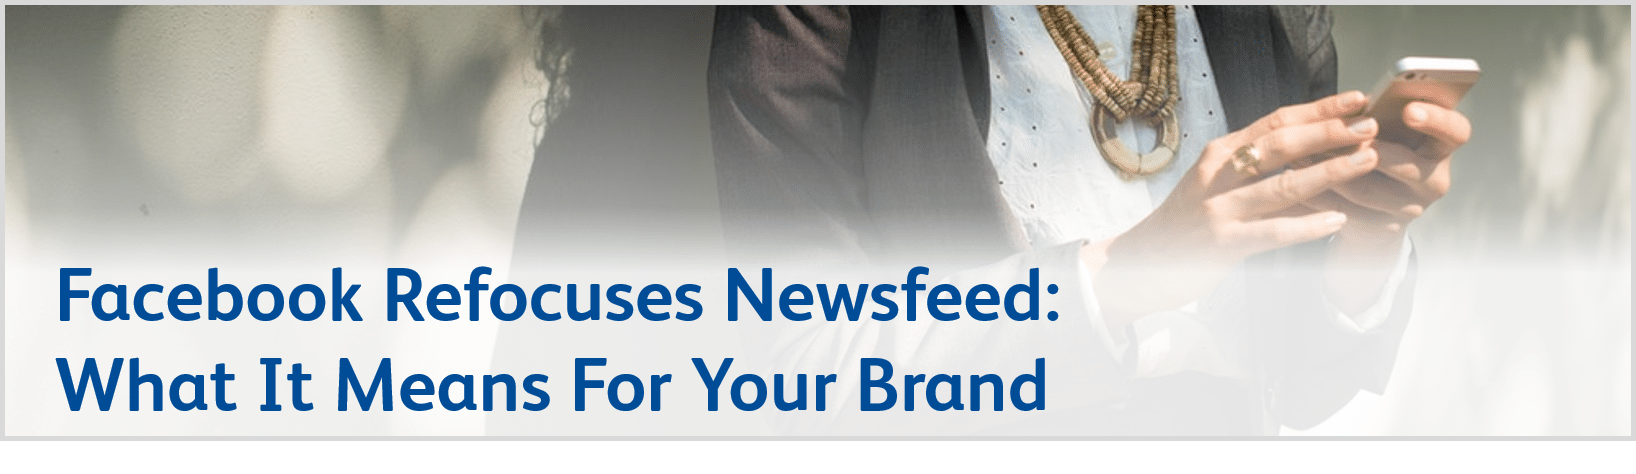 Facebook Refocuses Newsfeed: What It Means For Your Brand